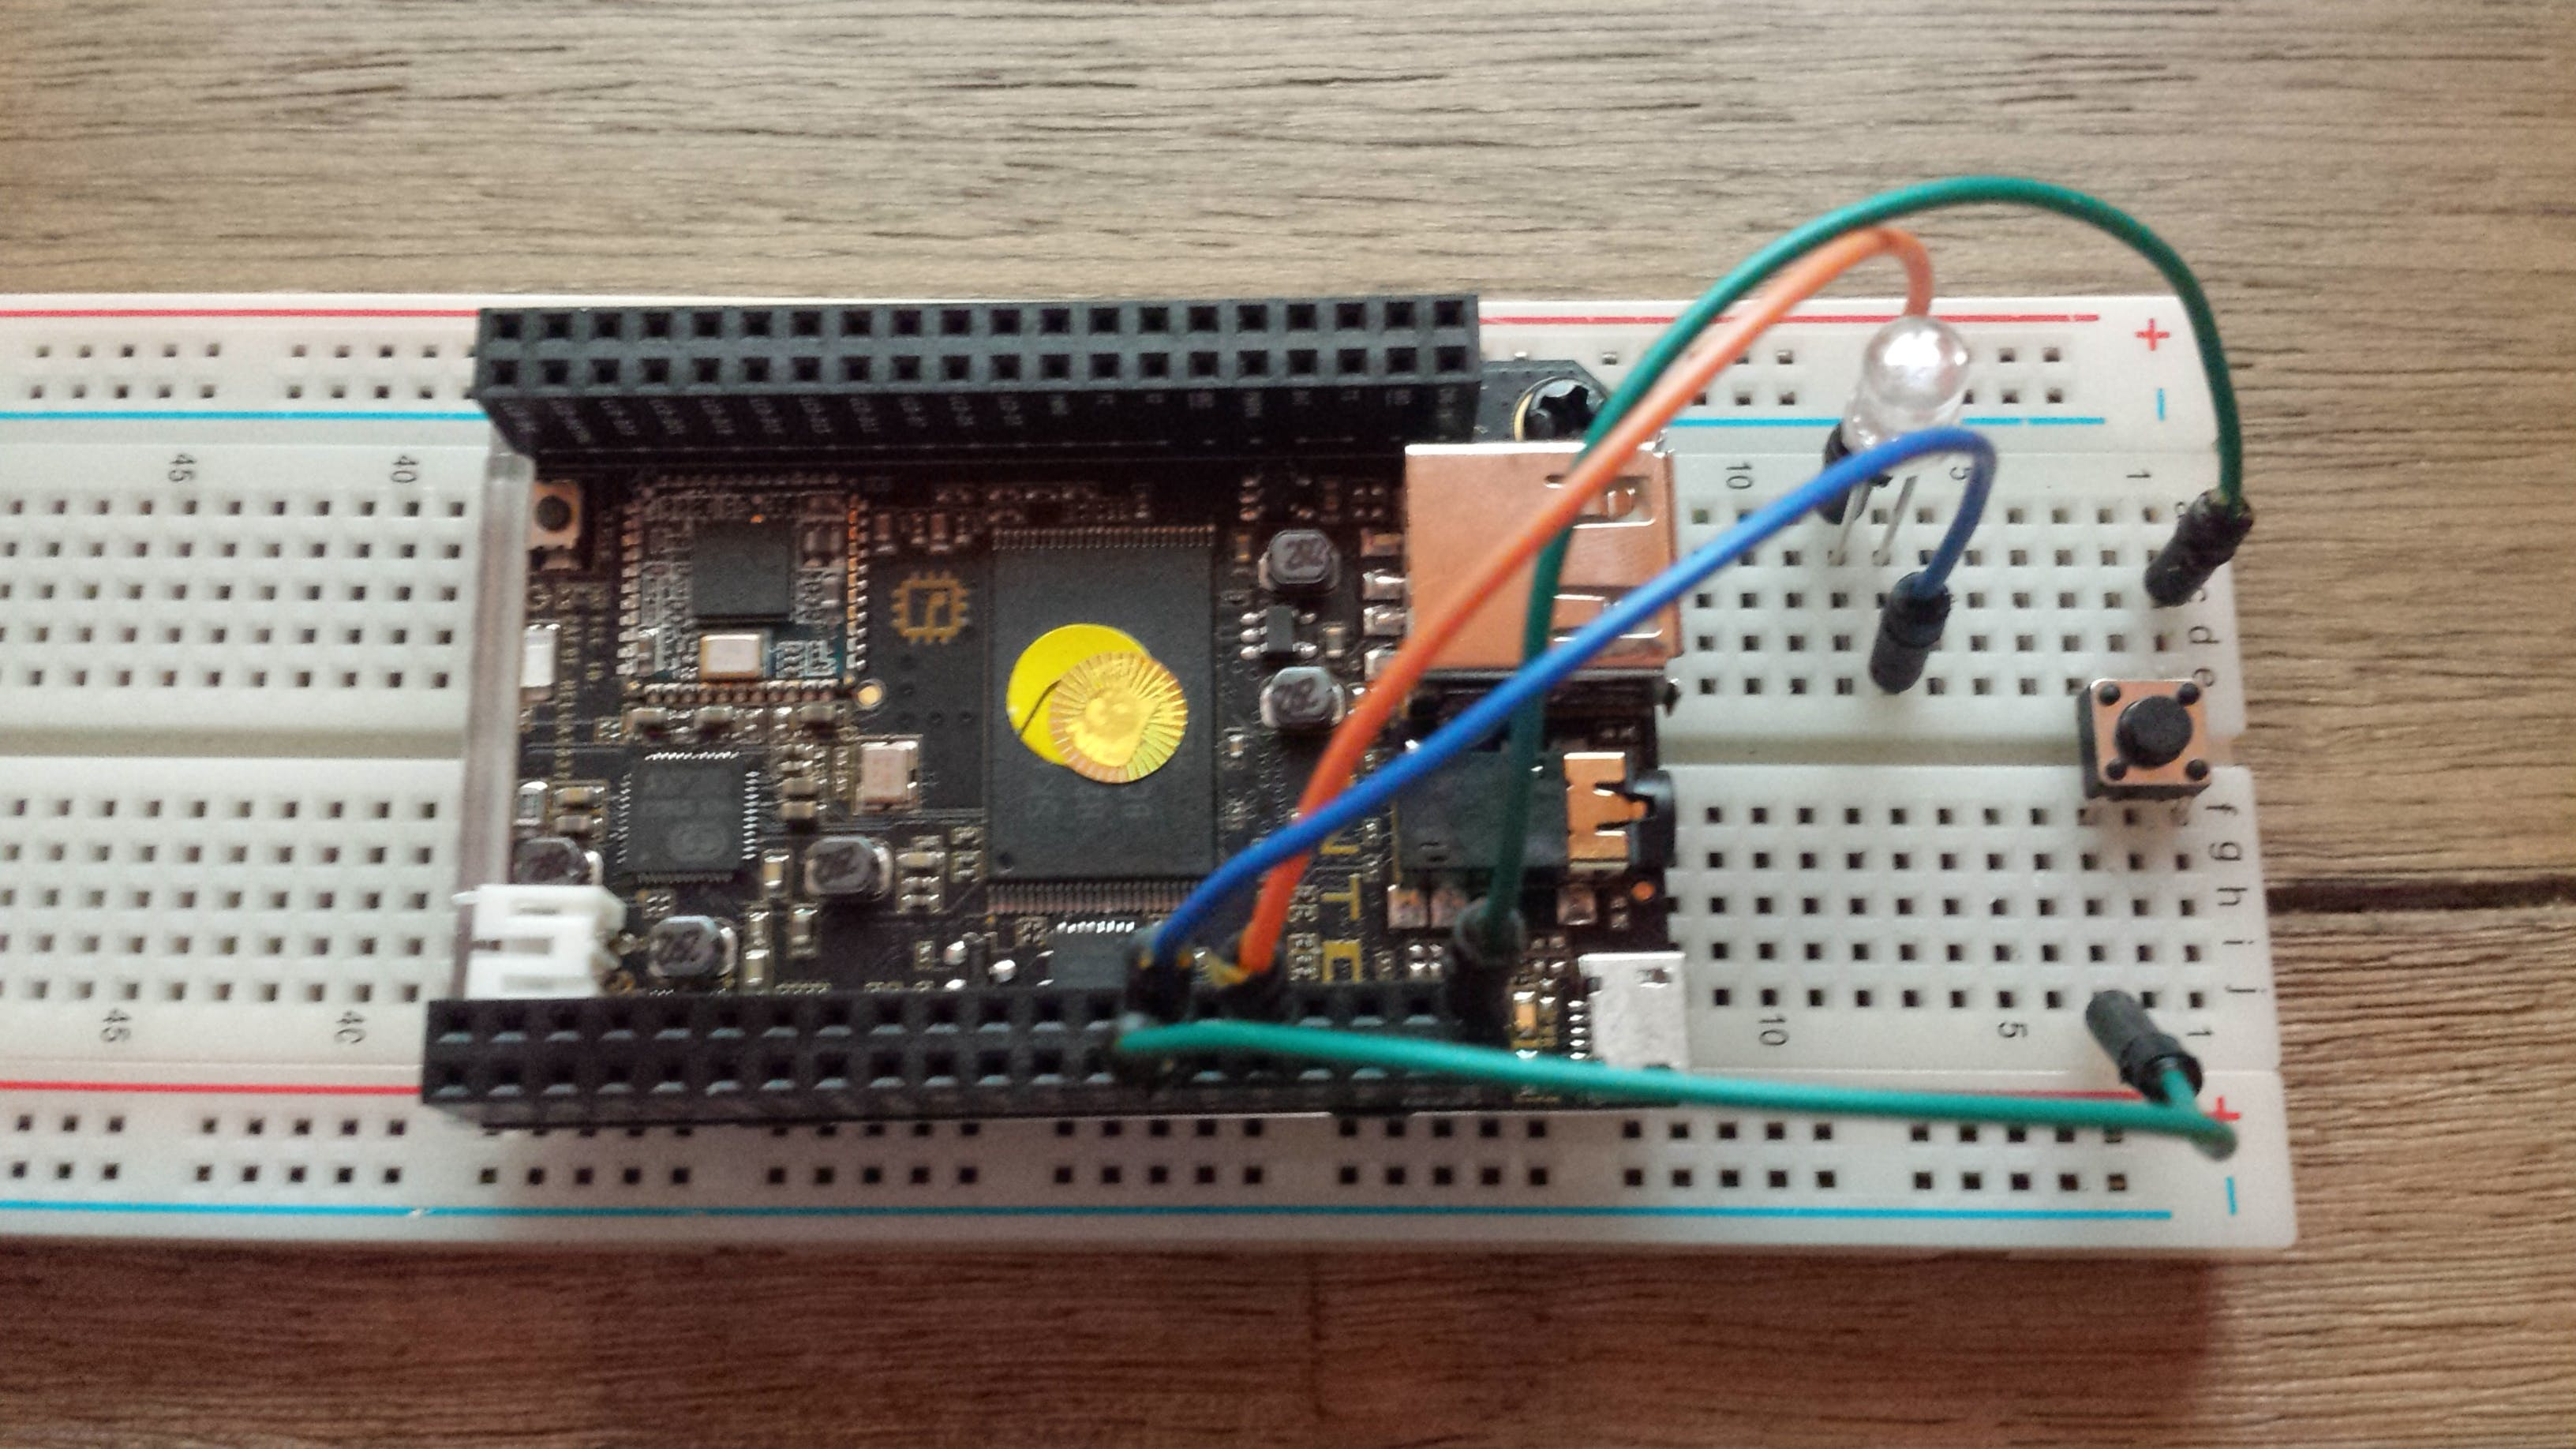 Controlling an LED with CHIP and BASH